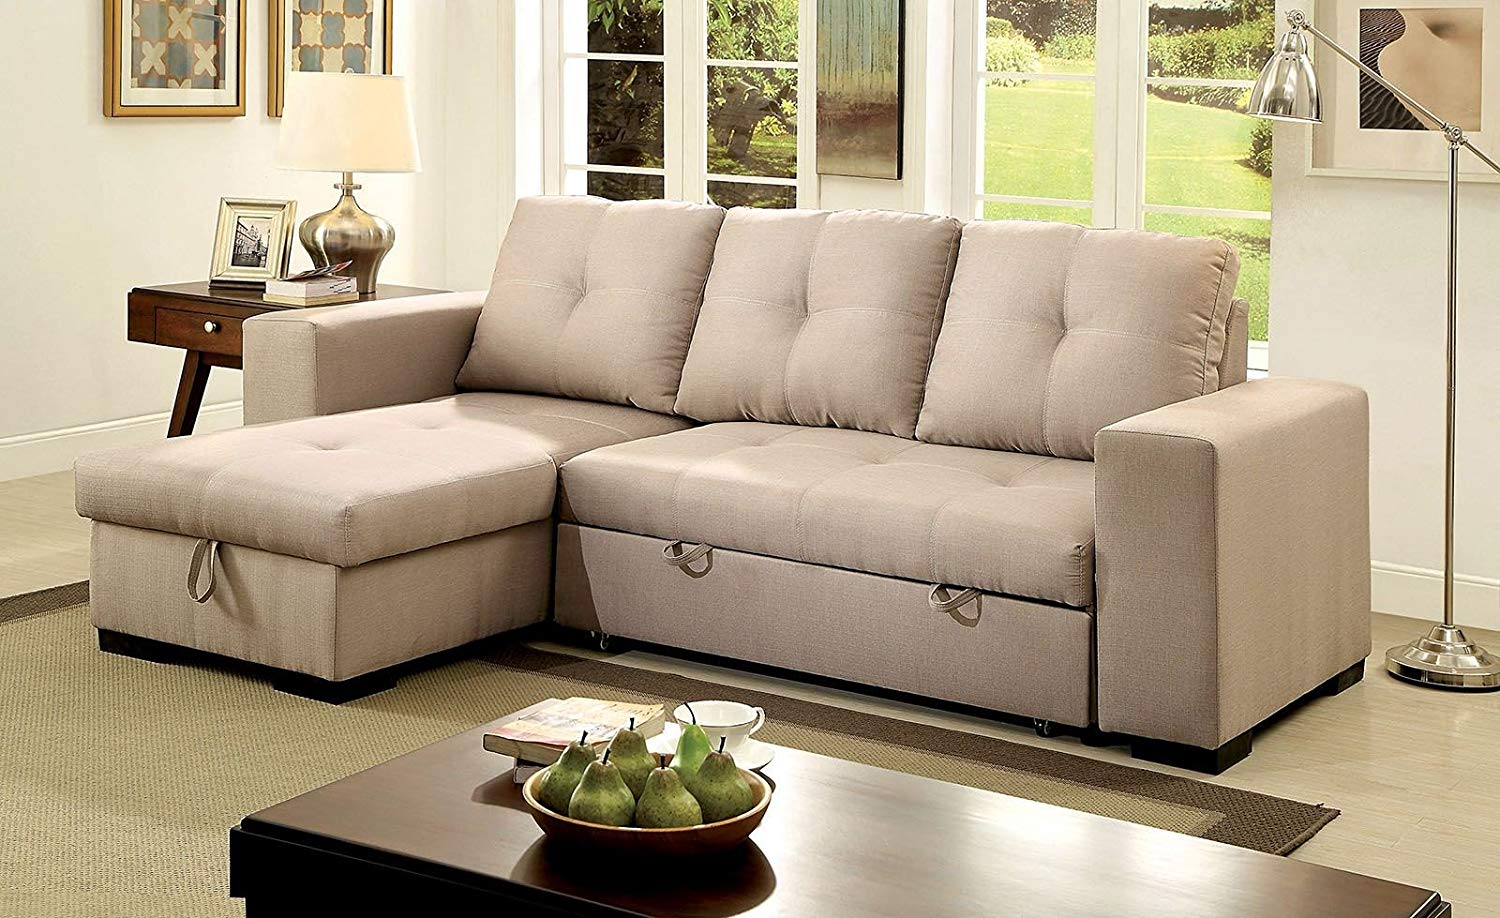 Phenomenal Buy Adjustable Sectional Sofa With Reversible Chaise And Spiritservingveterans Wood Chair Design Ideas Spiritservingveteransorg